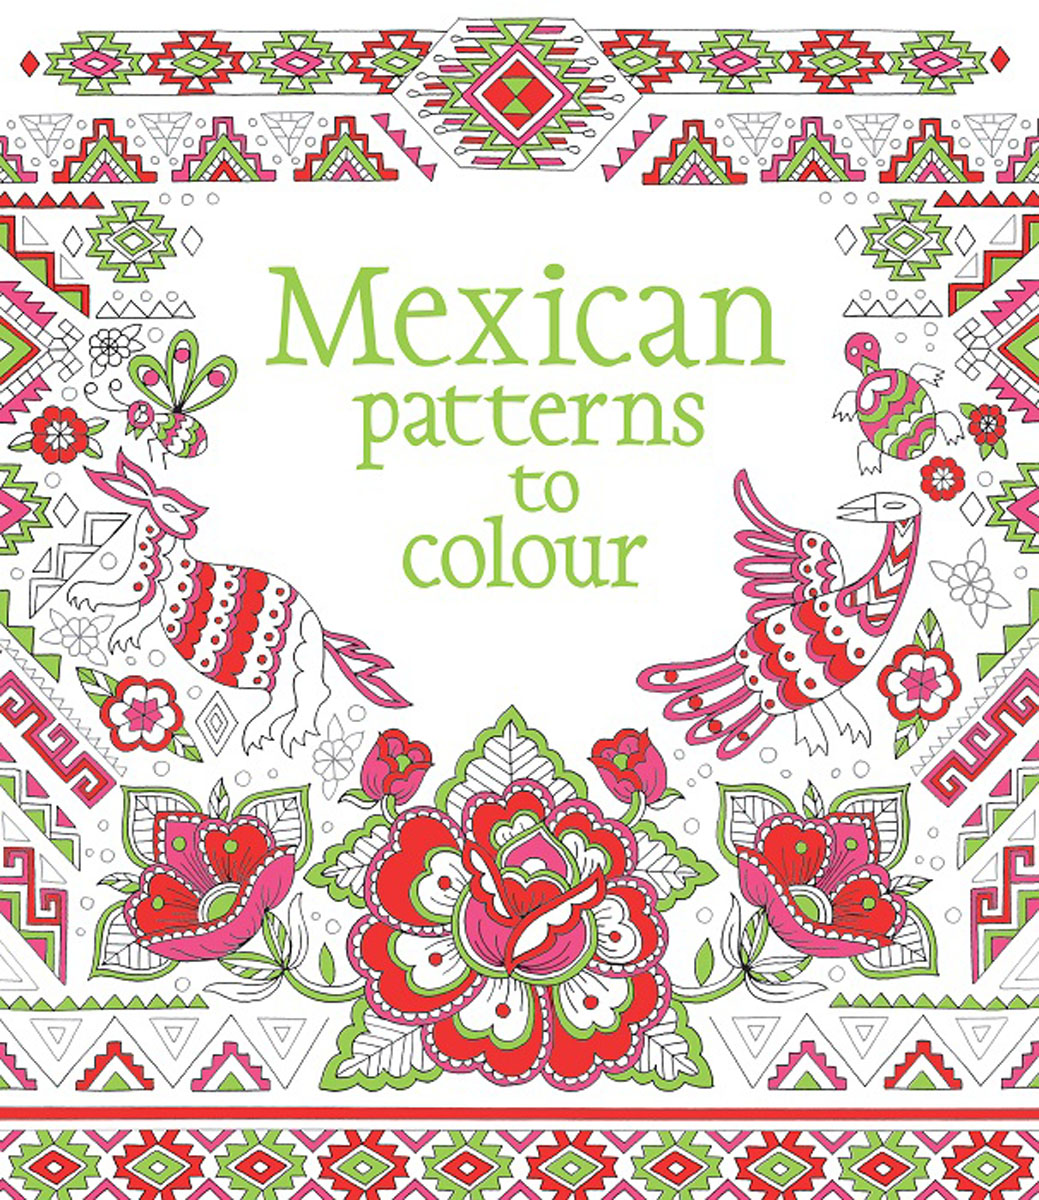 Mexican Patterns to Colour indian patterns to colour